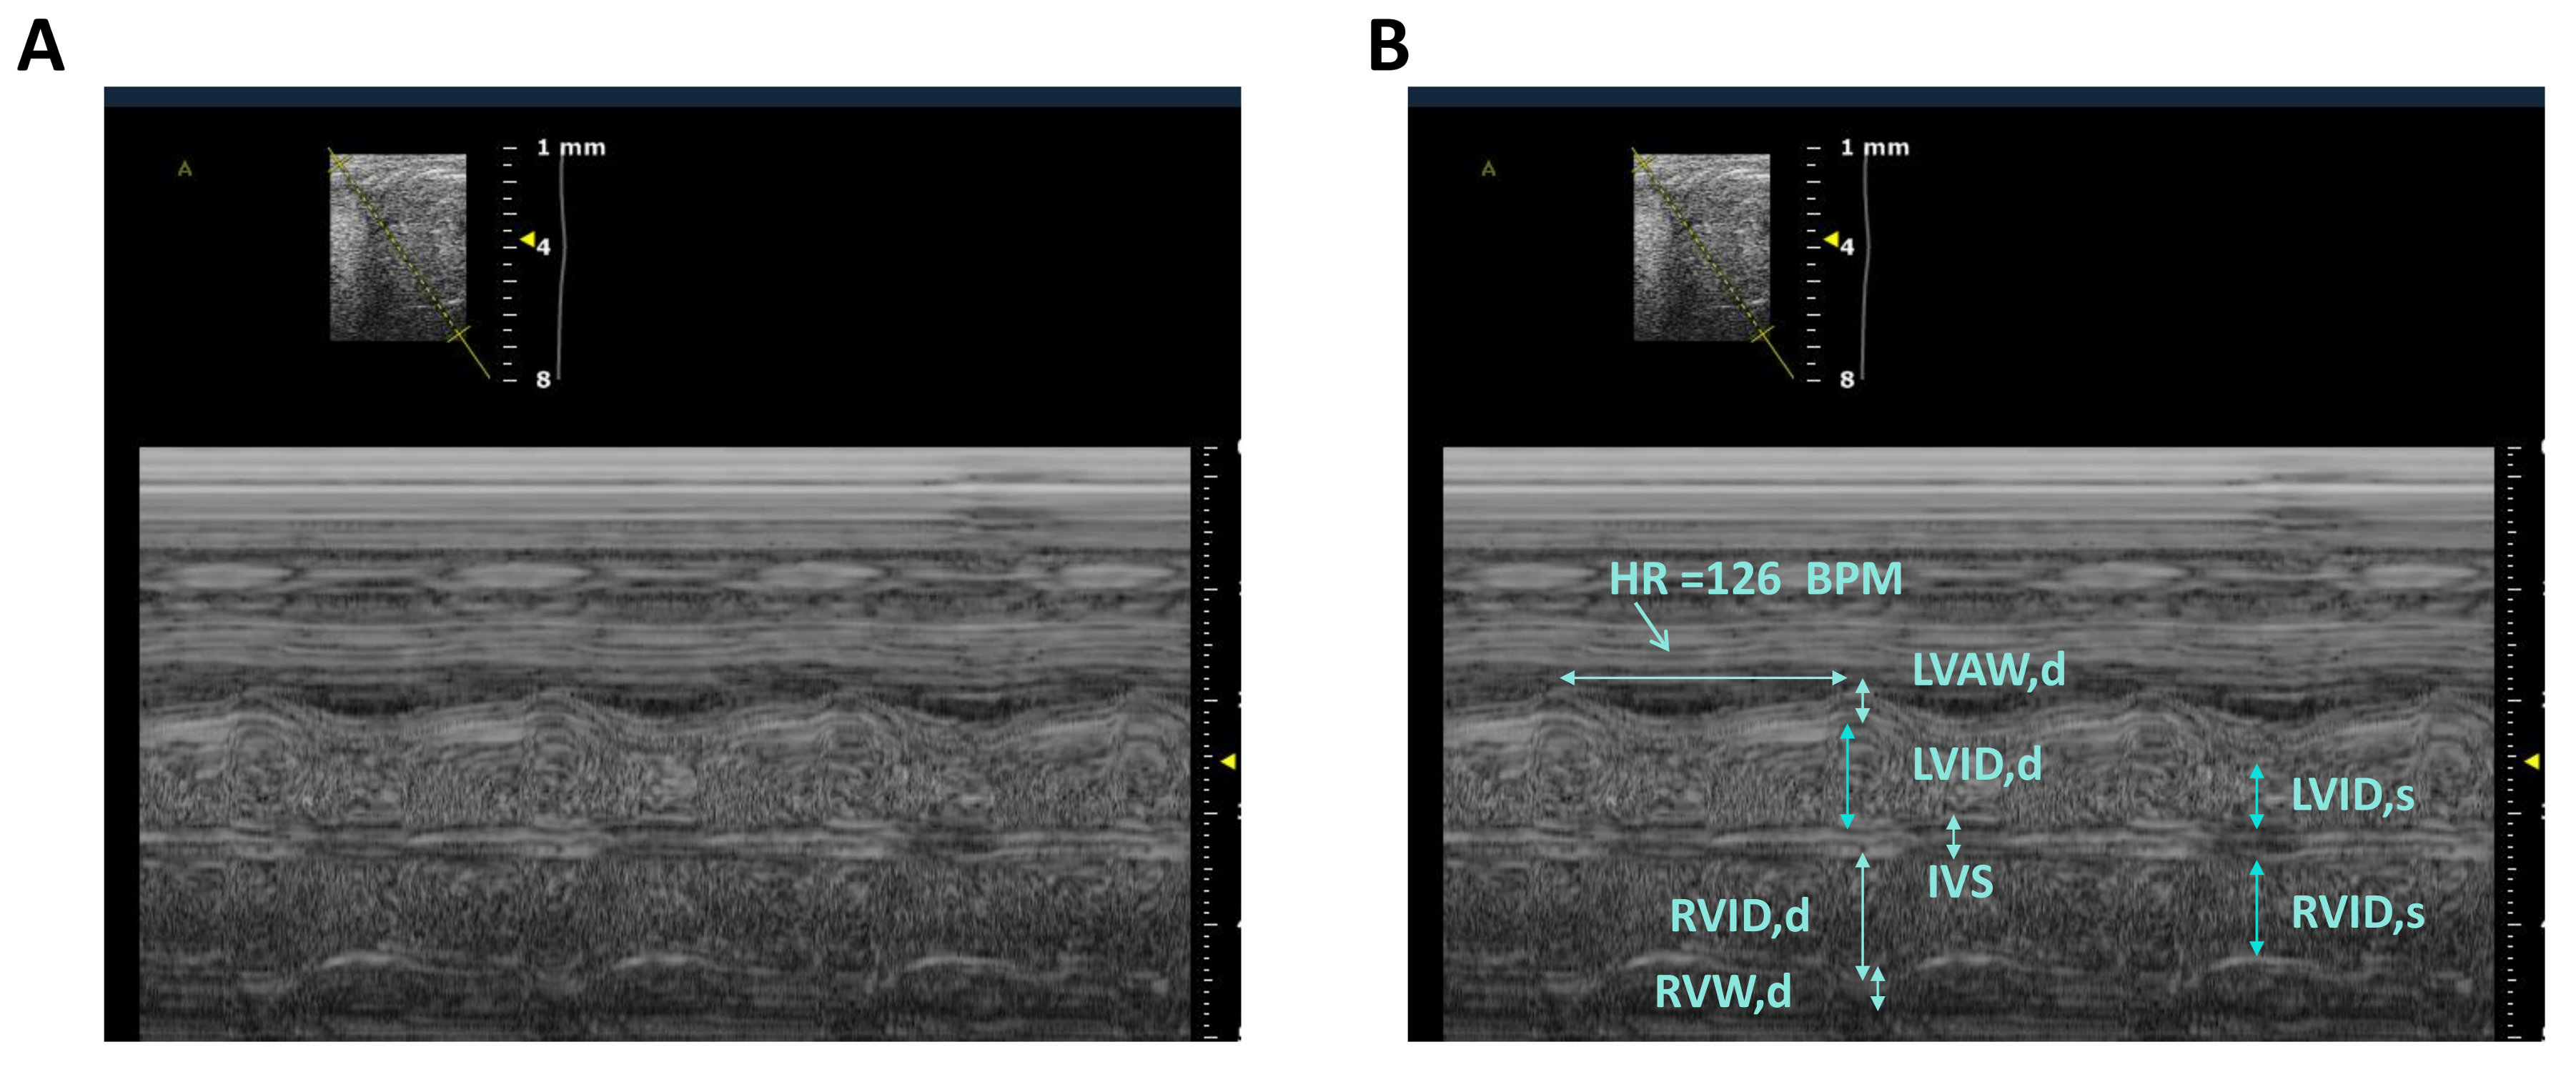 Fetal Mouse Cardiovascular Imaging Using a High-frequency